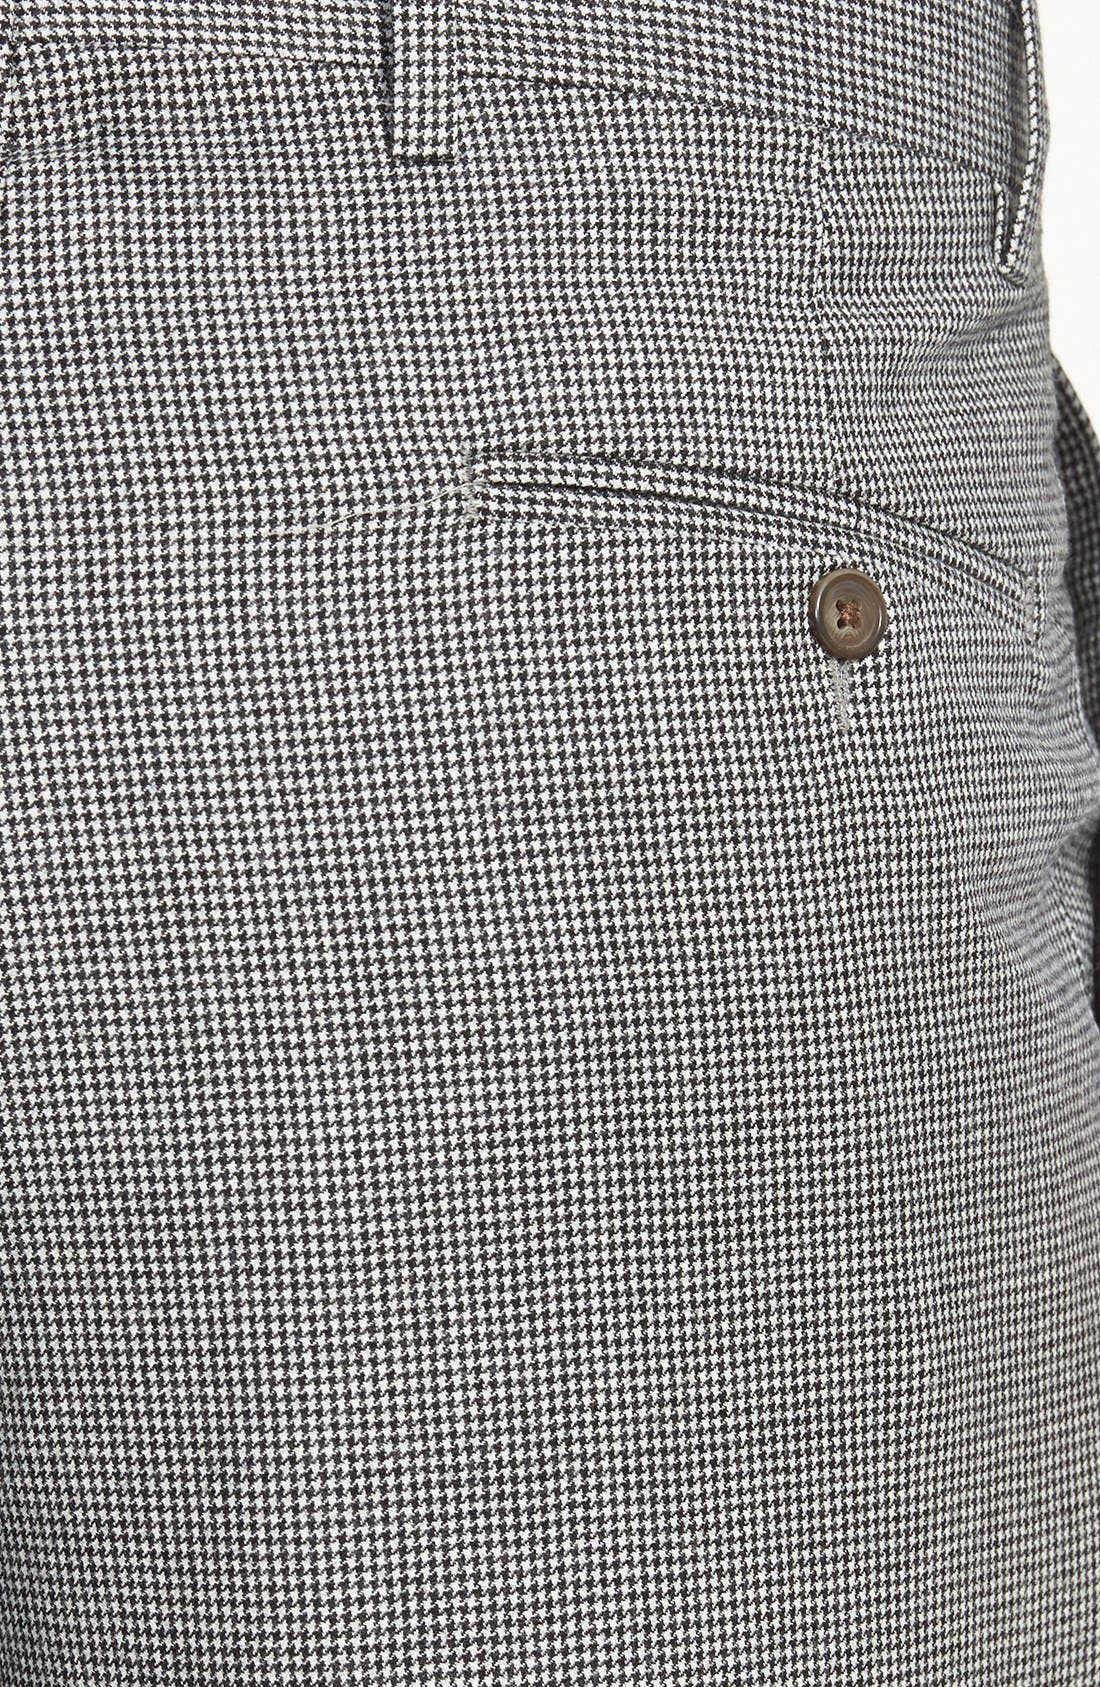 Pleated Houndstooth Wool Trousers,                             Alternate thumbnail 2, color,                             Charcoal